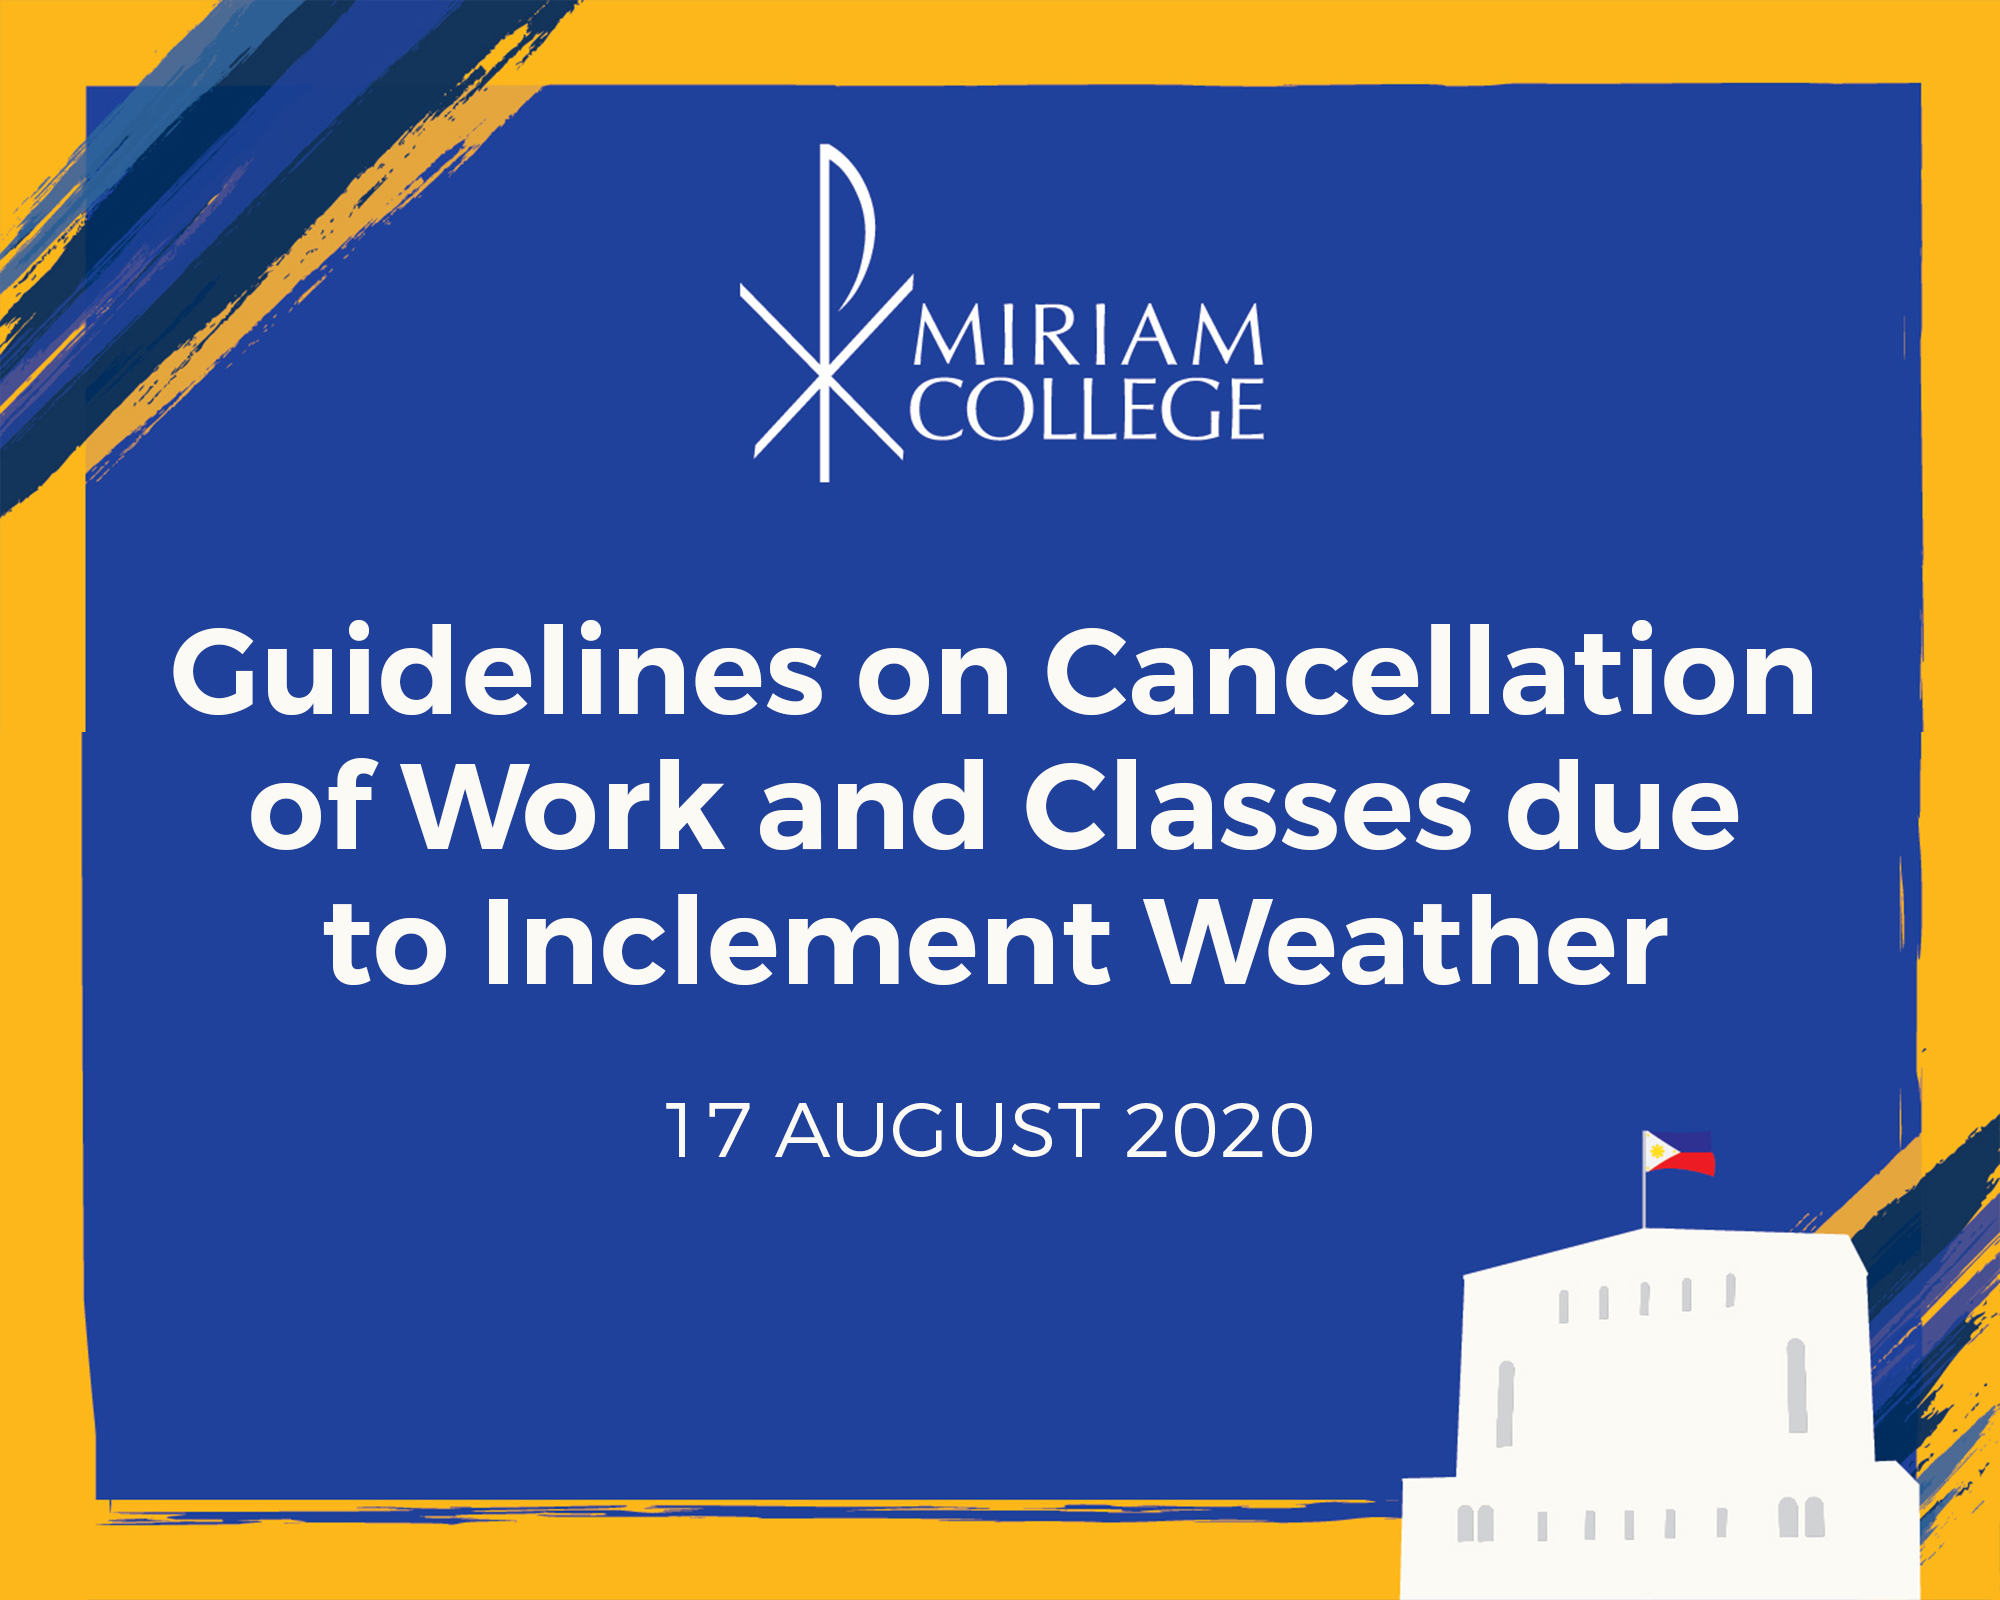 Guidelines on the Cancellation of Classes due to Inclement Weather